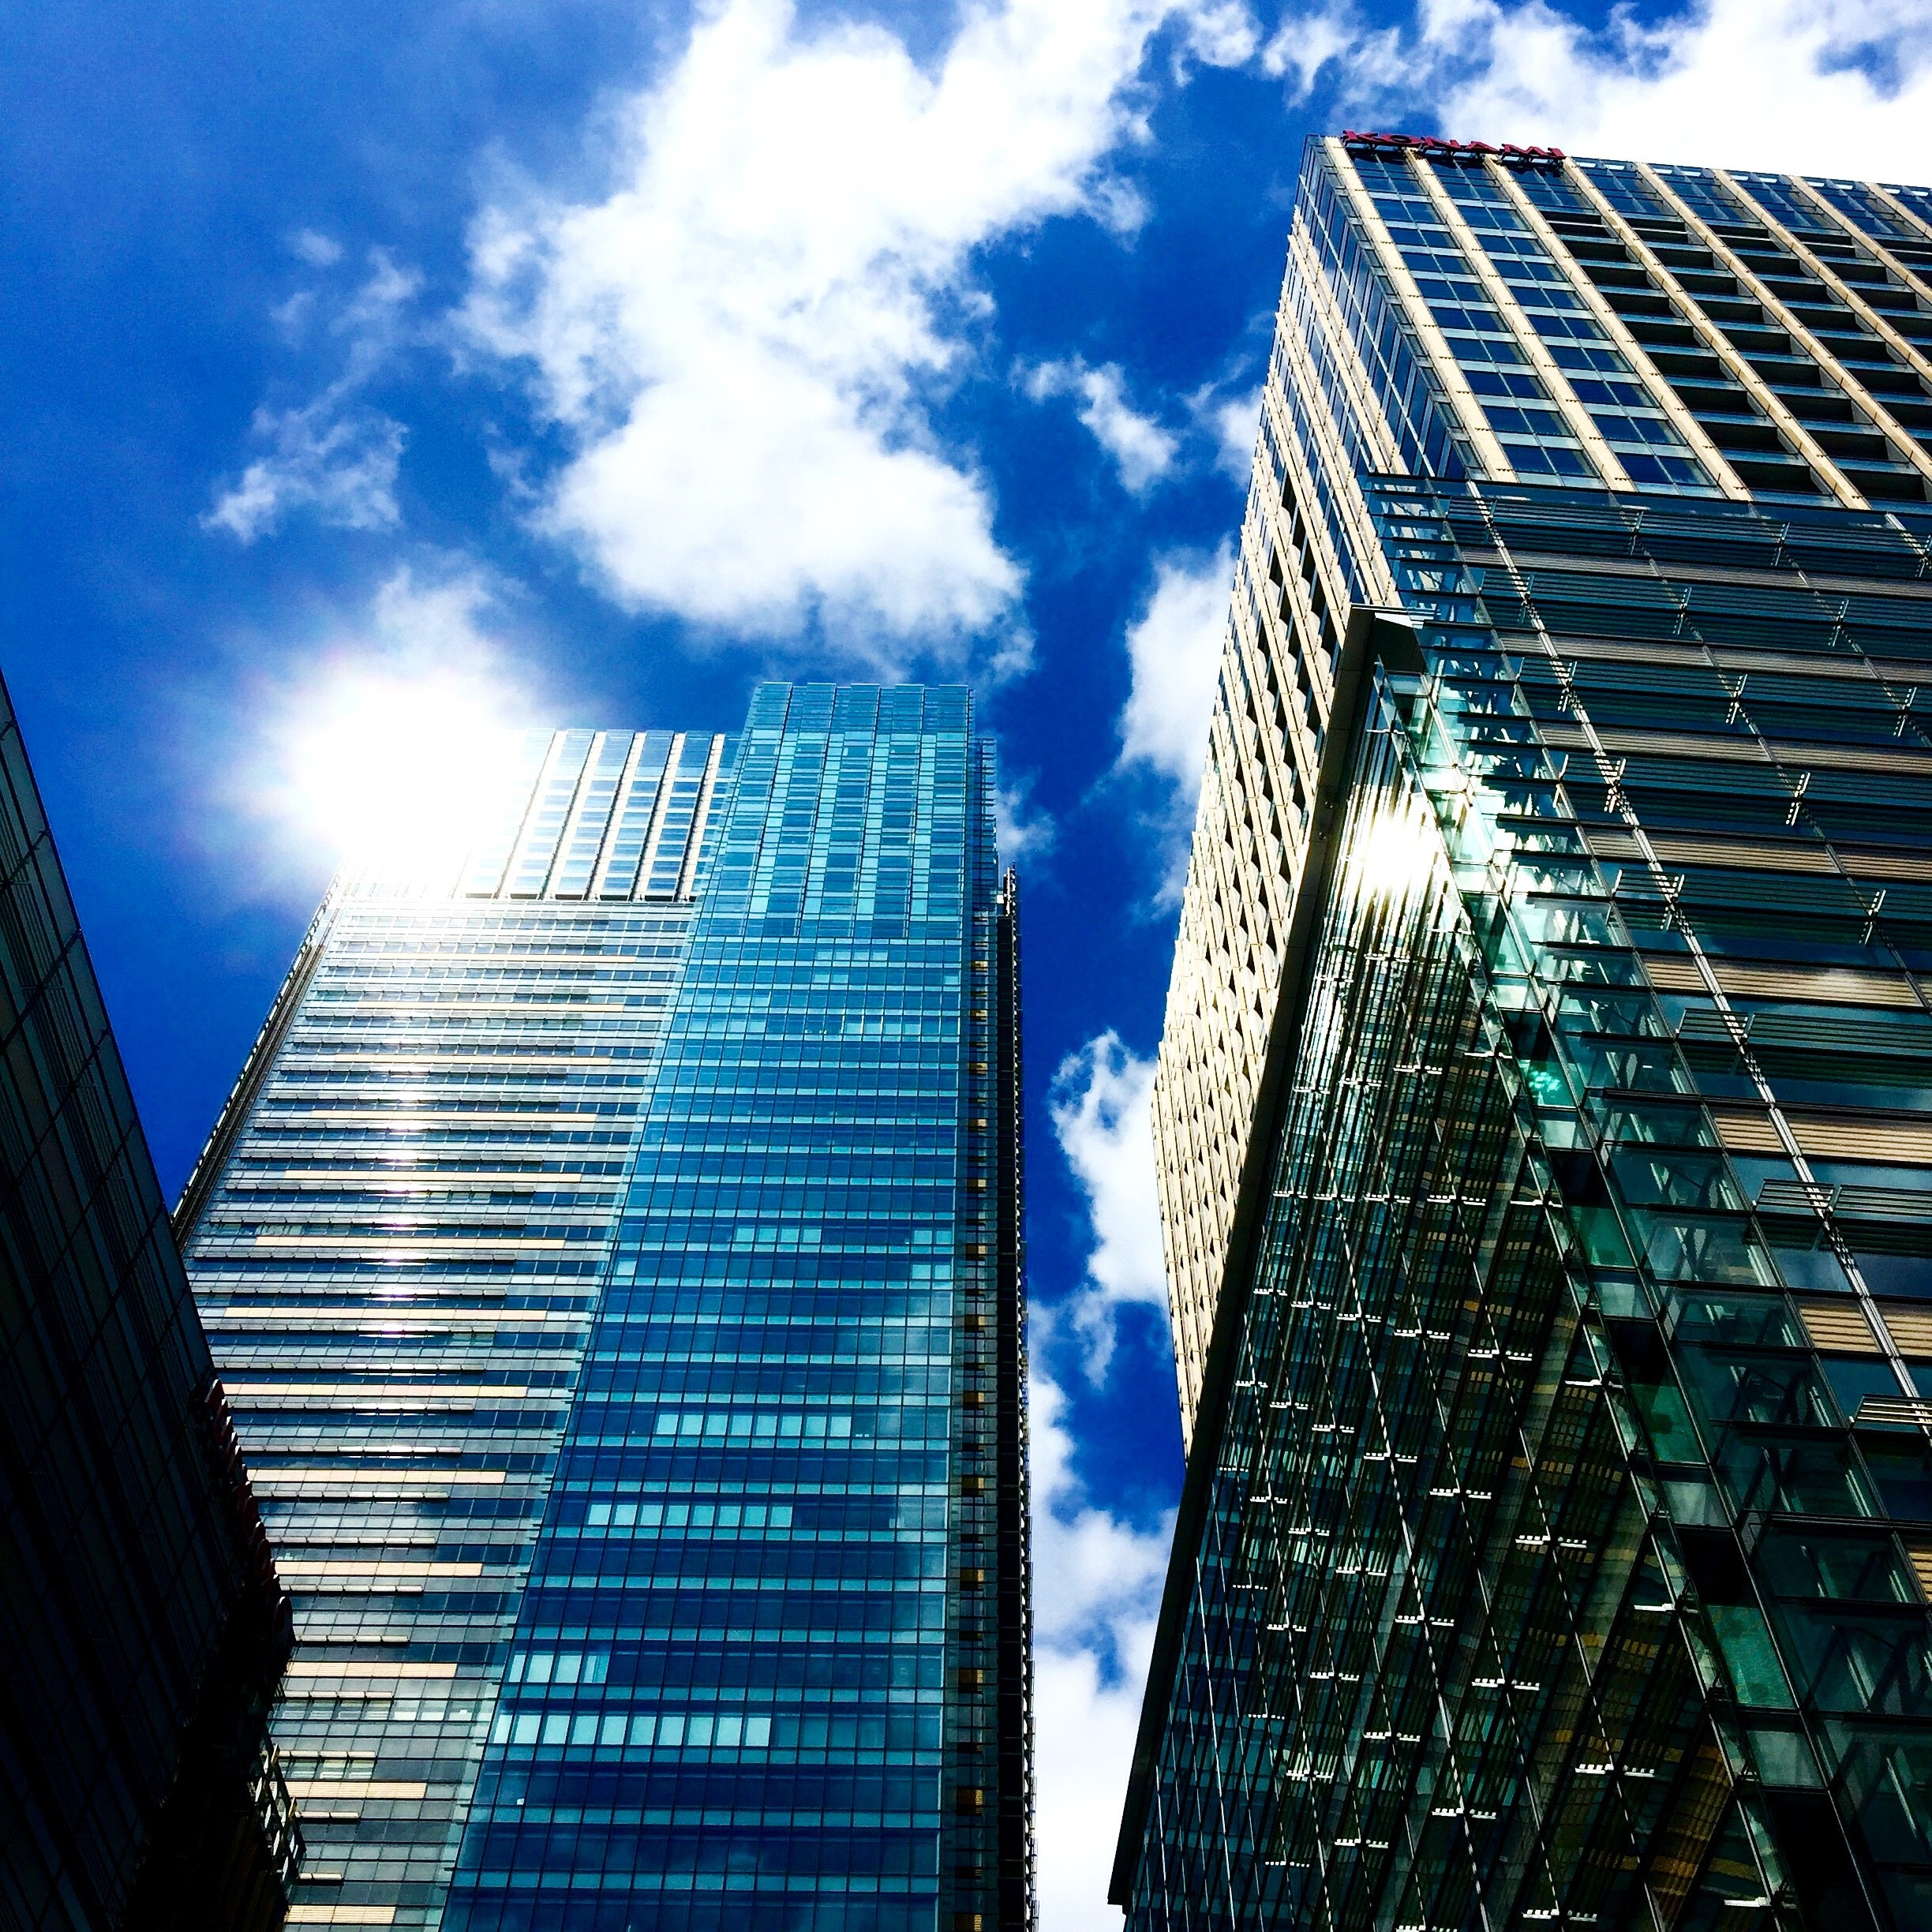 Low Angle View of Skyscrapers Against Sky, Office, Windows, Urban, Tower, HQ Photo